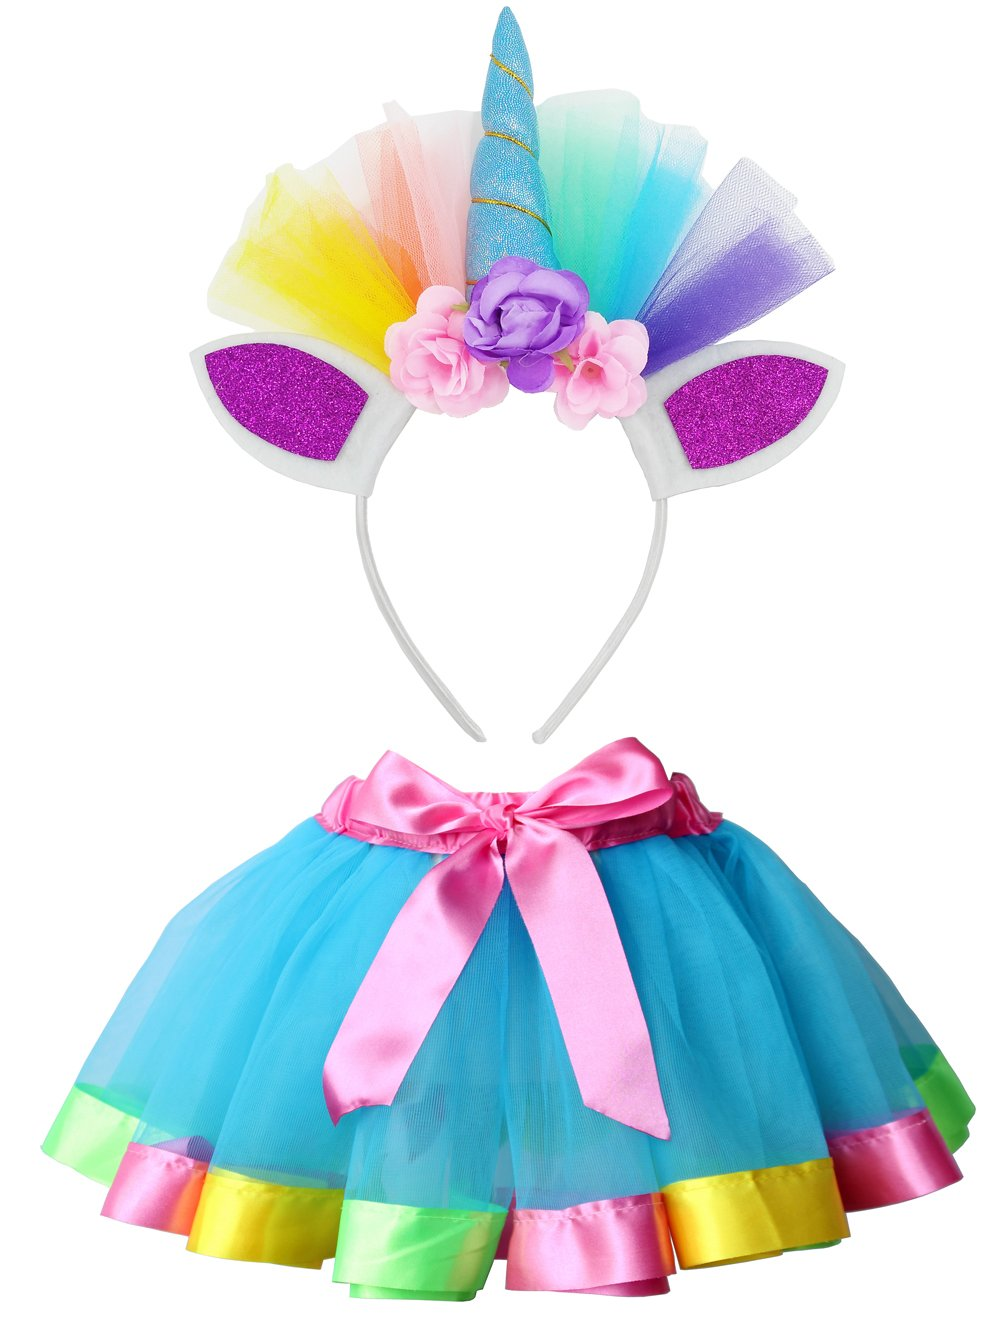 Loveyal Little Girls Layered Rainbow Tutu Skirts with Unicorn Horn Headband (Lake Blue, L,4-8 Years)